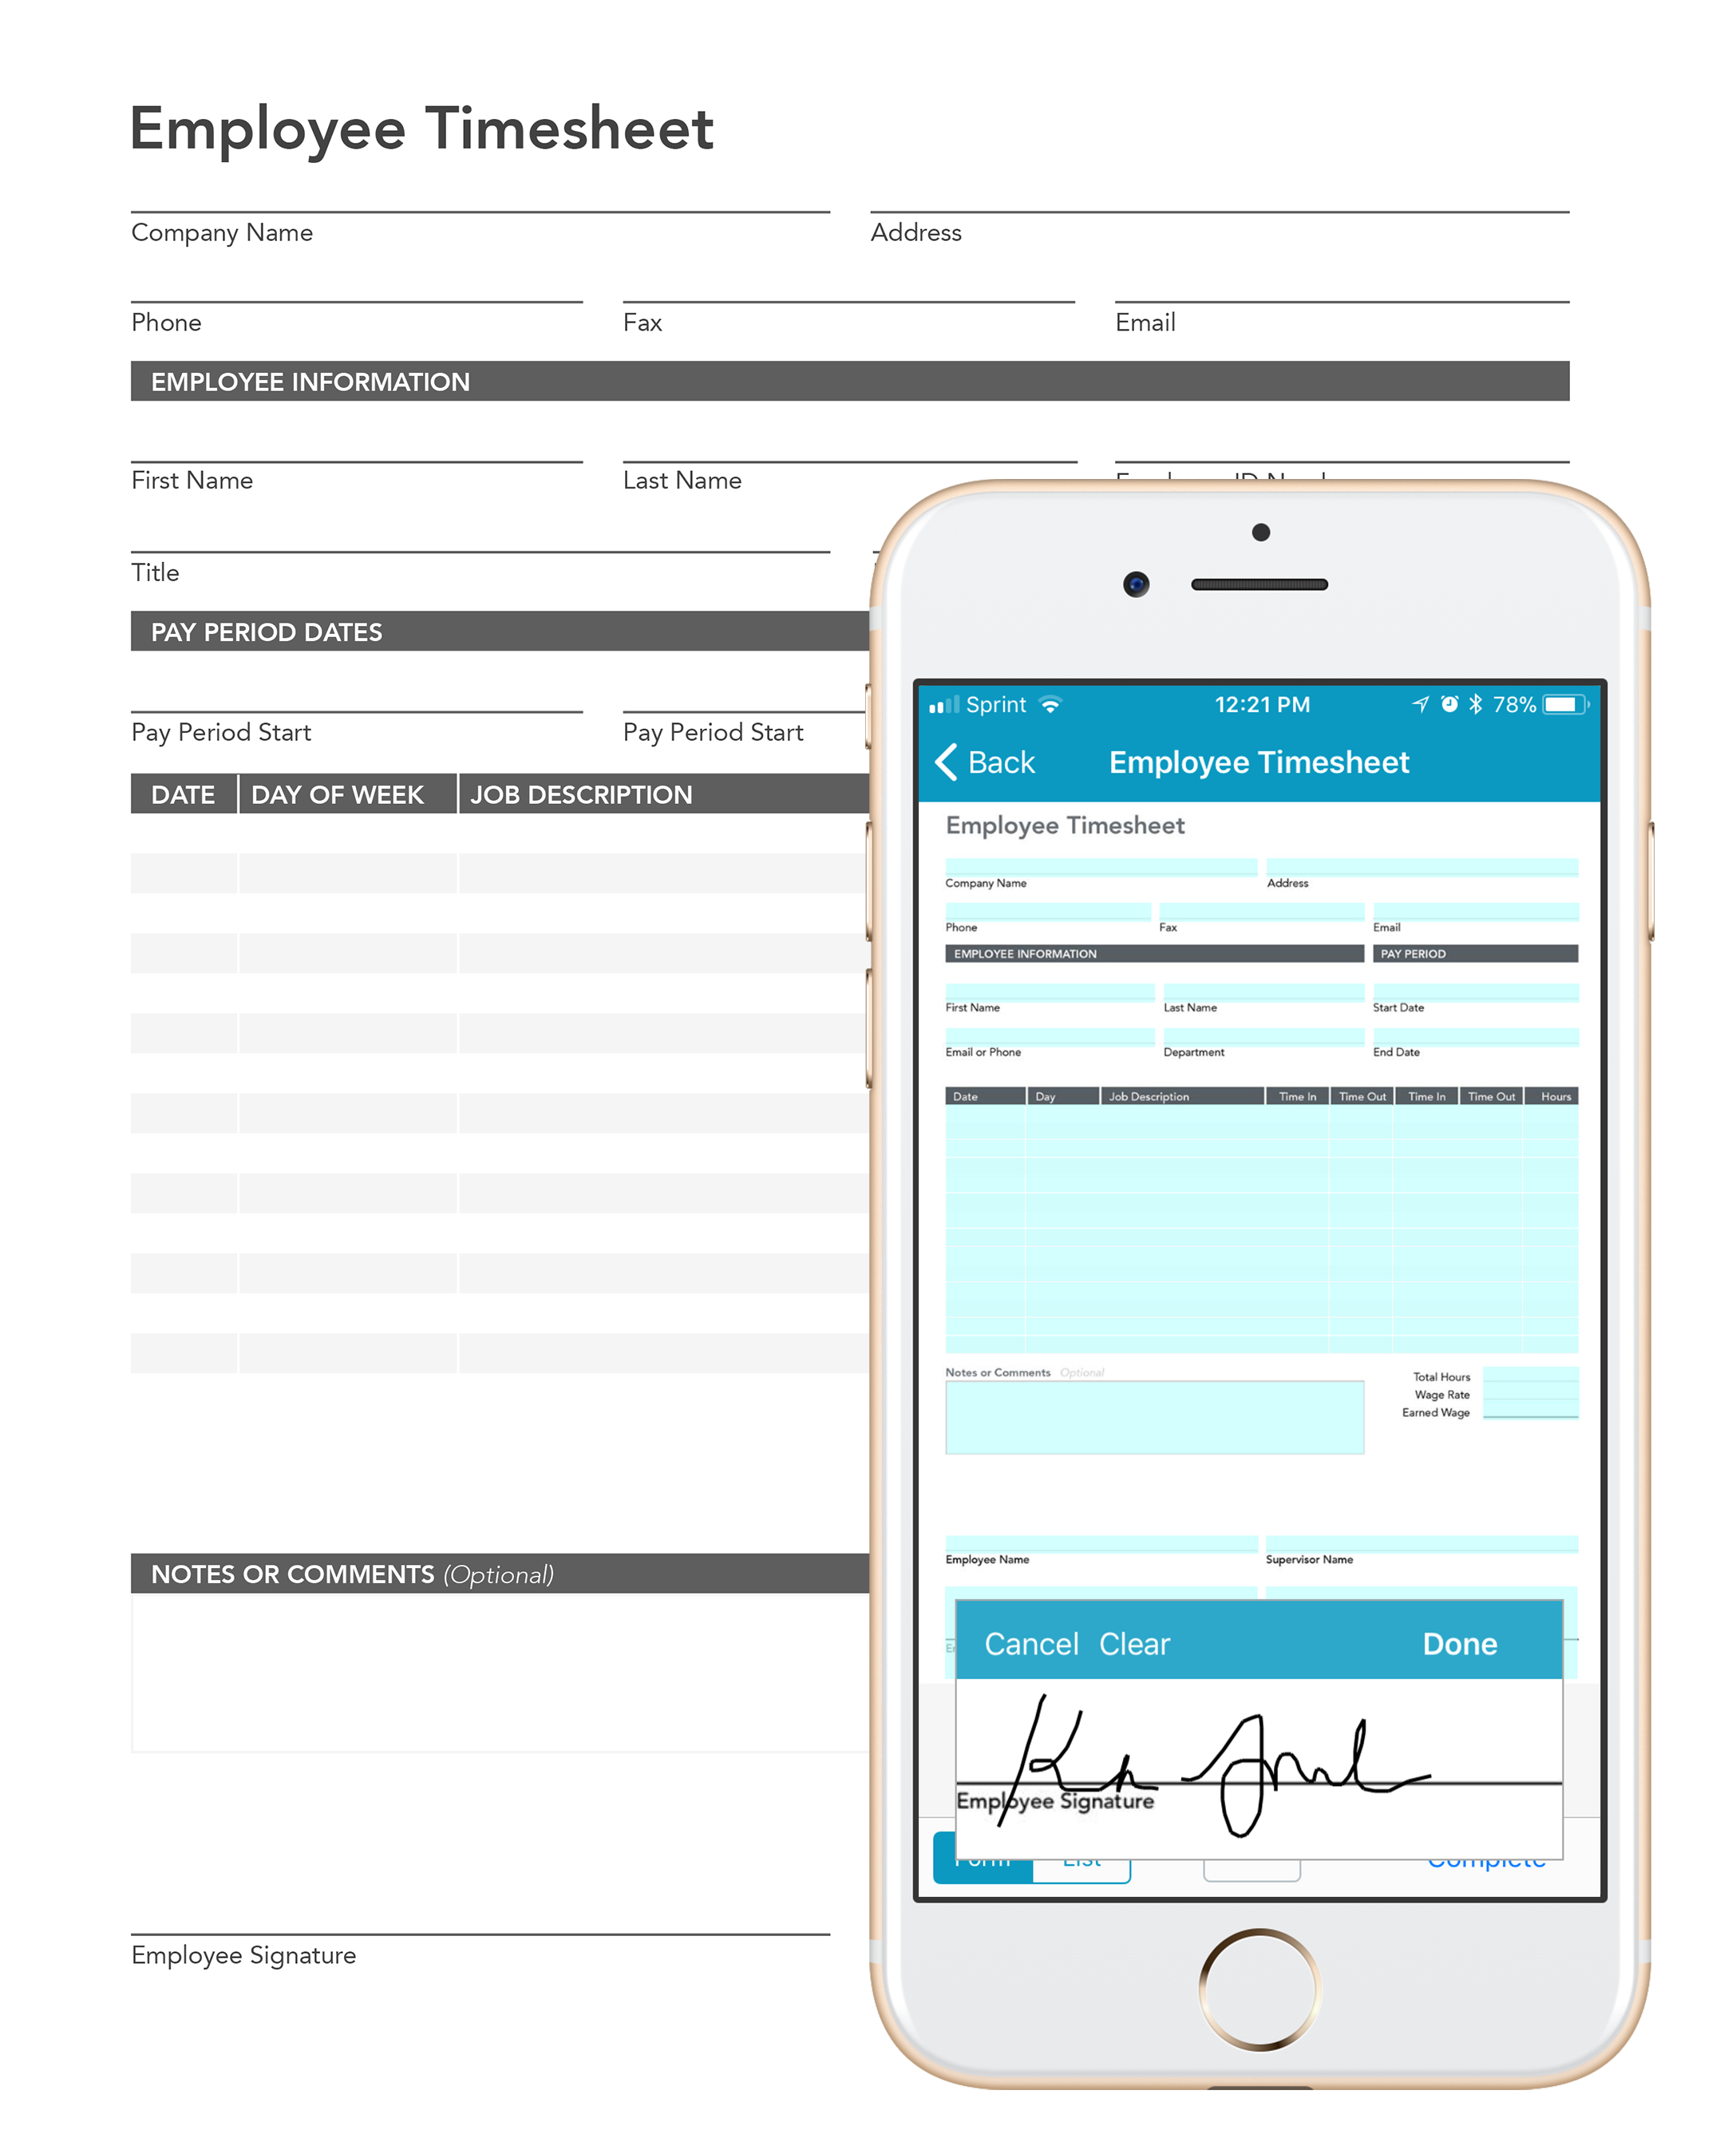 Capture employee shift information with digital hospitality forms and timesheets.